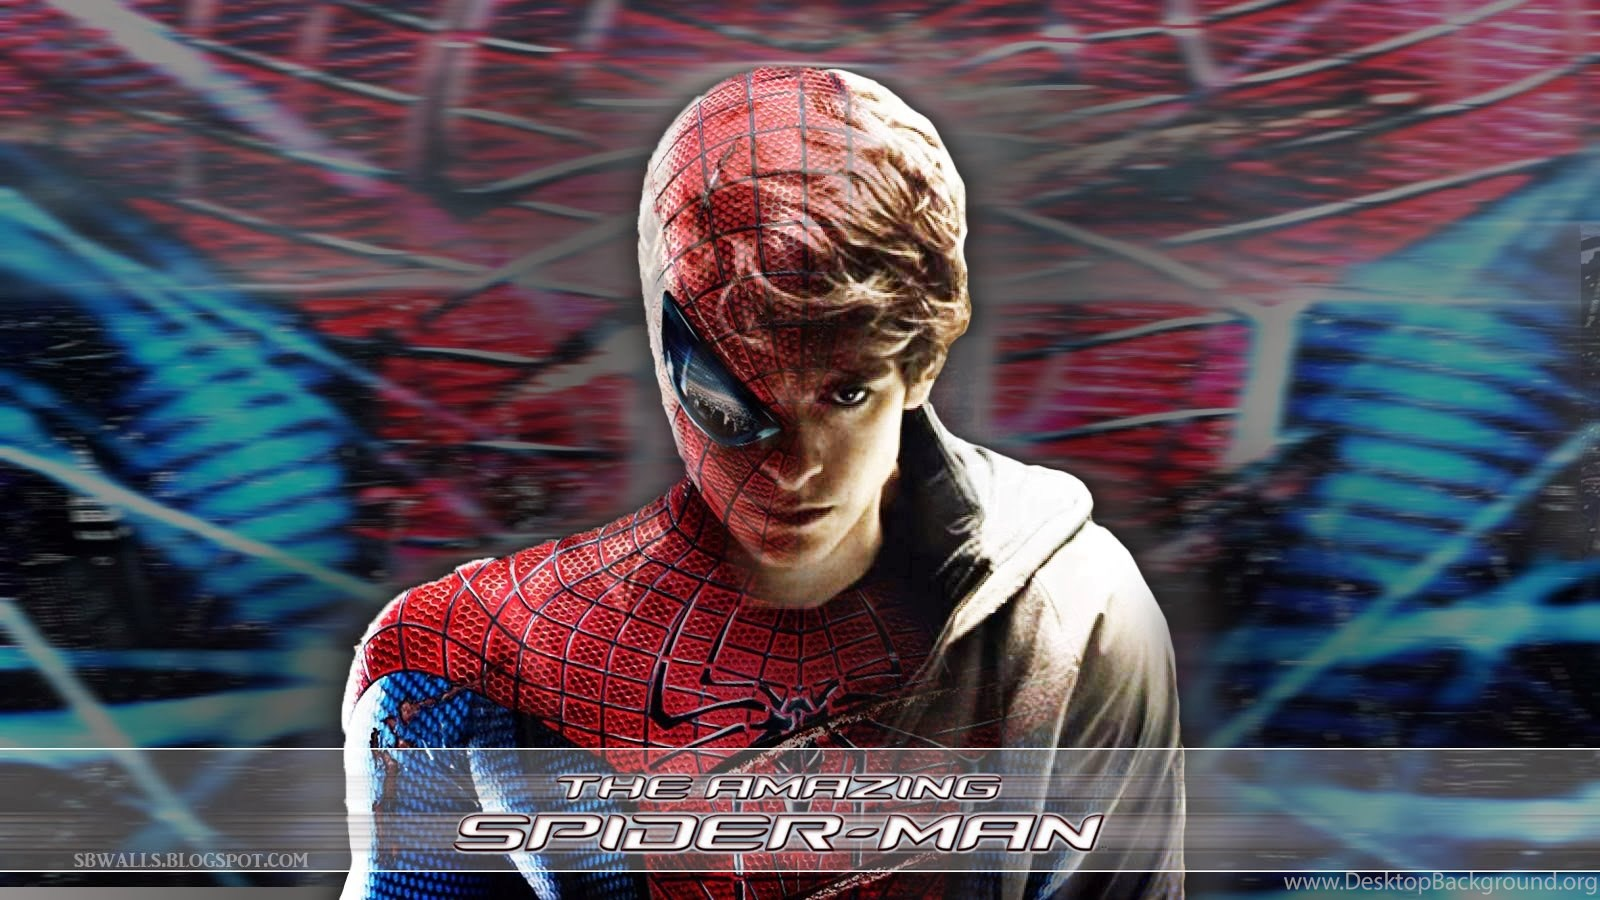 The Amazing Spiderman 2 Game Wallpapers Desktop Background